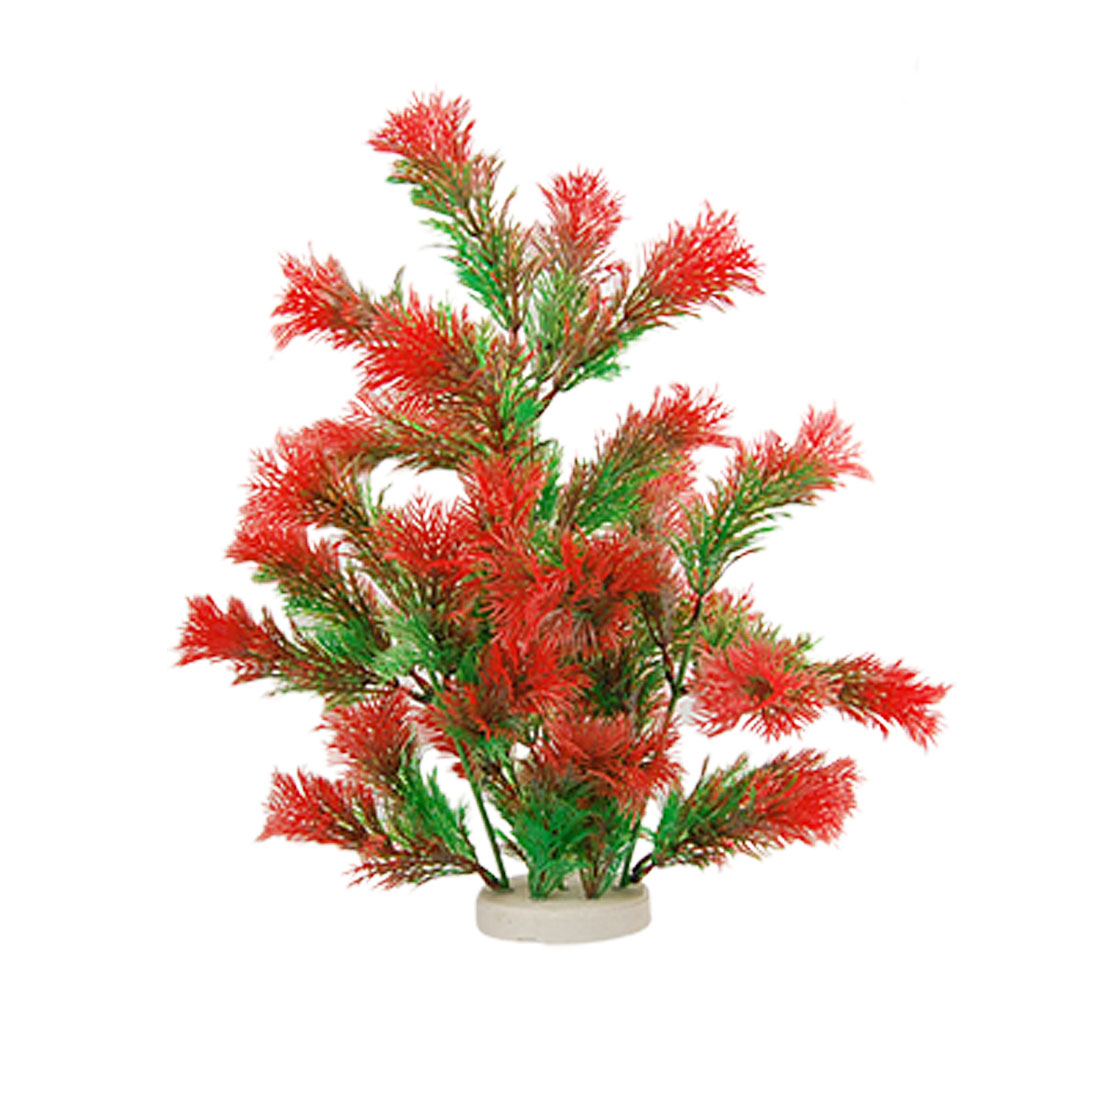 Ceramic Base Green Red Plastic Grass Plant for Fish Tank